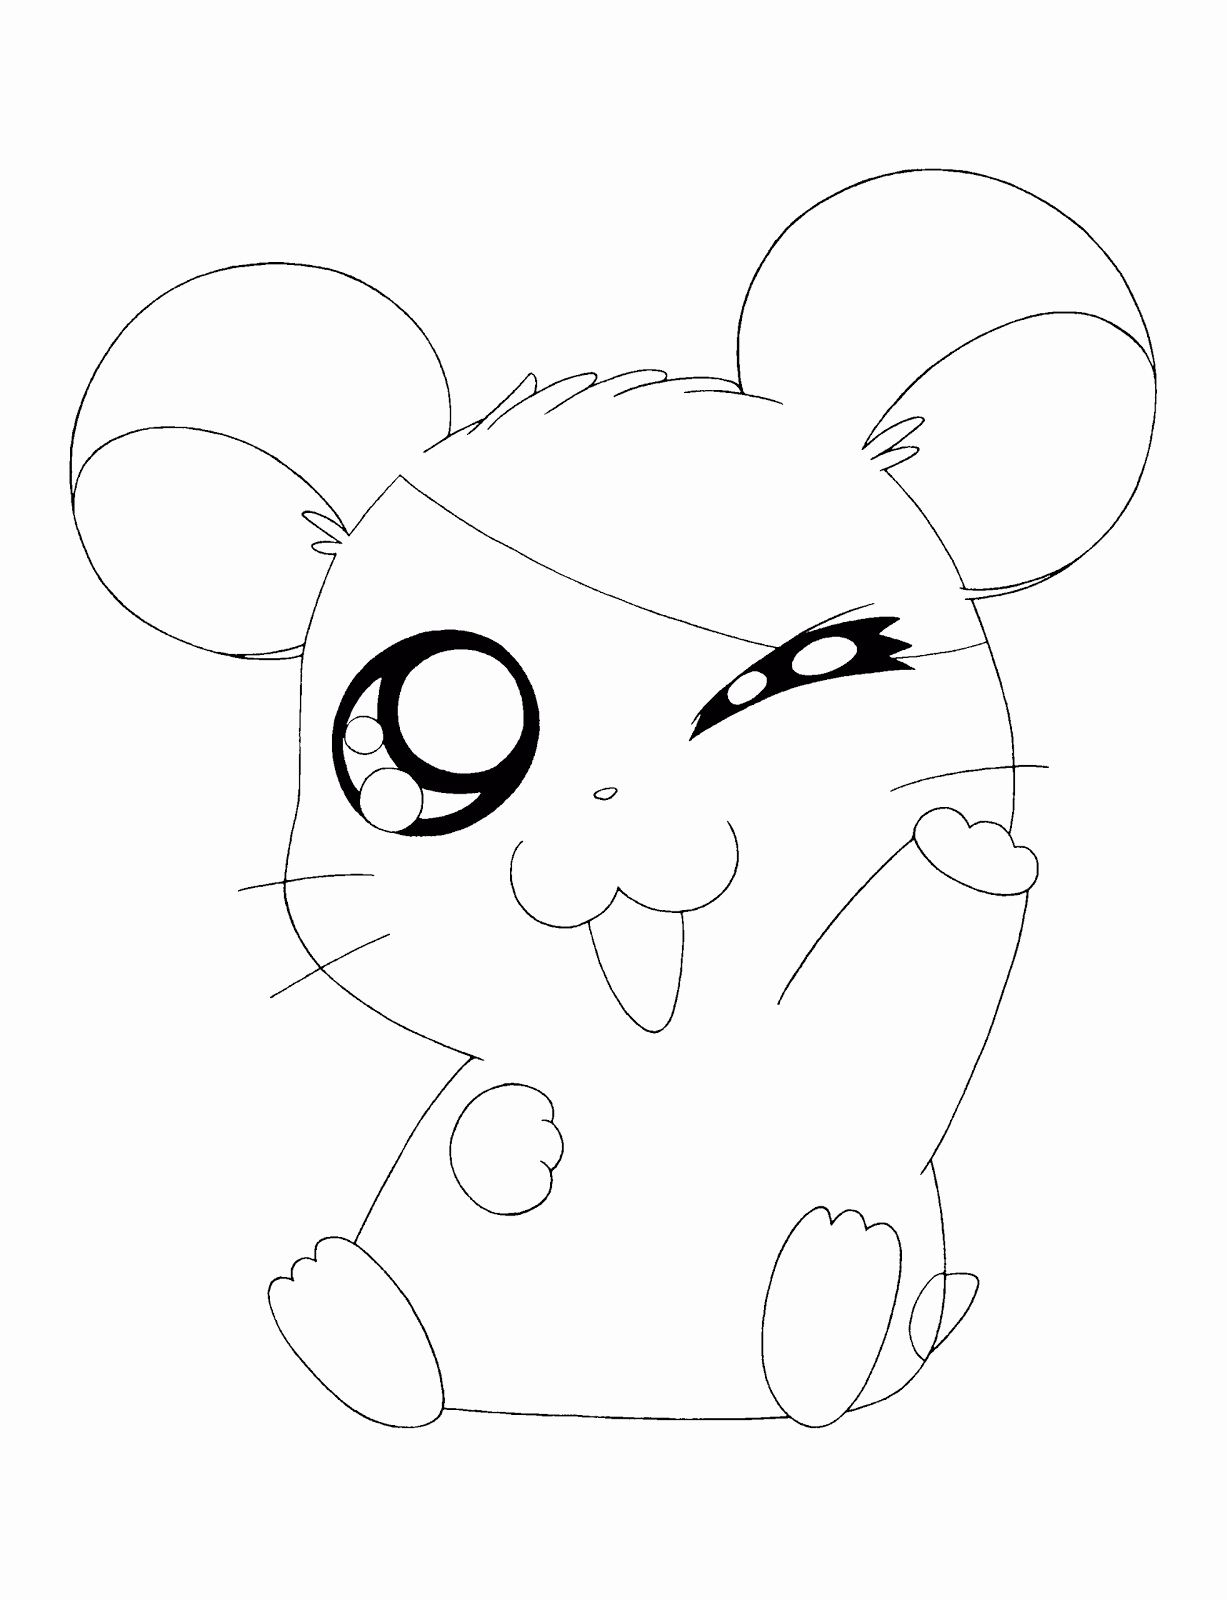 Cute Coloring Pages Animals Lovely Hamtaro Cute Animals Coloring Pages In 2020 Animal Coloring Books Animal Coloring Pages Cute Coloring Pages